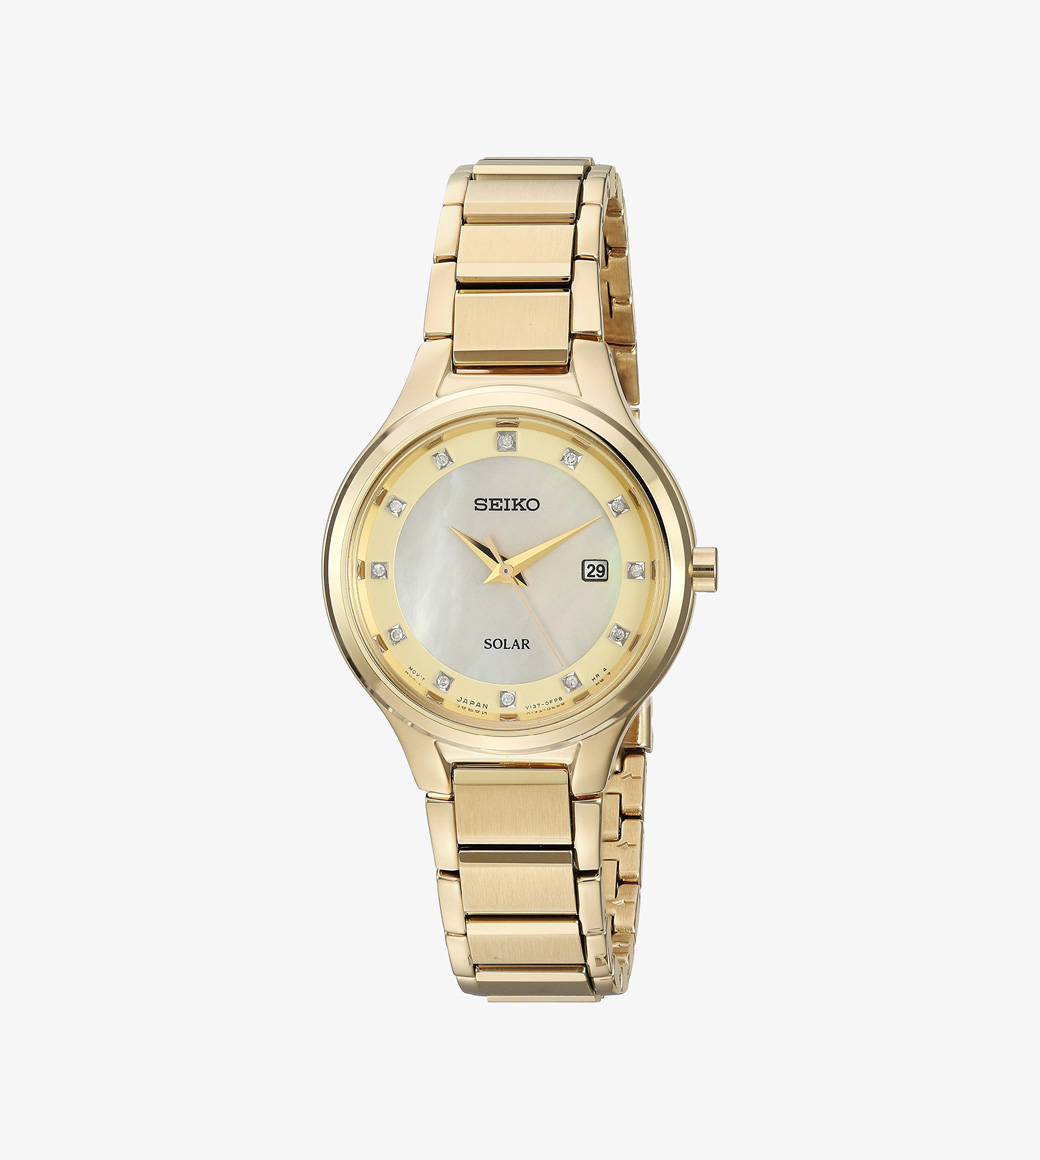 Michael Kors October Coupons, Promo Codes & Sales. Check here for Michael Kors latest deals and steals, which are often listed right on their sales page.